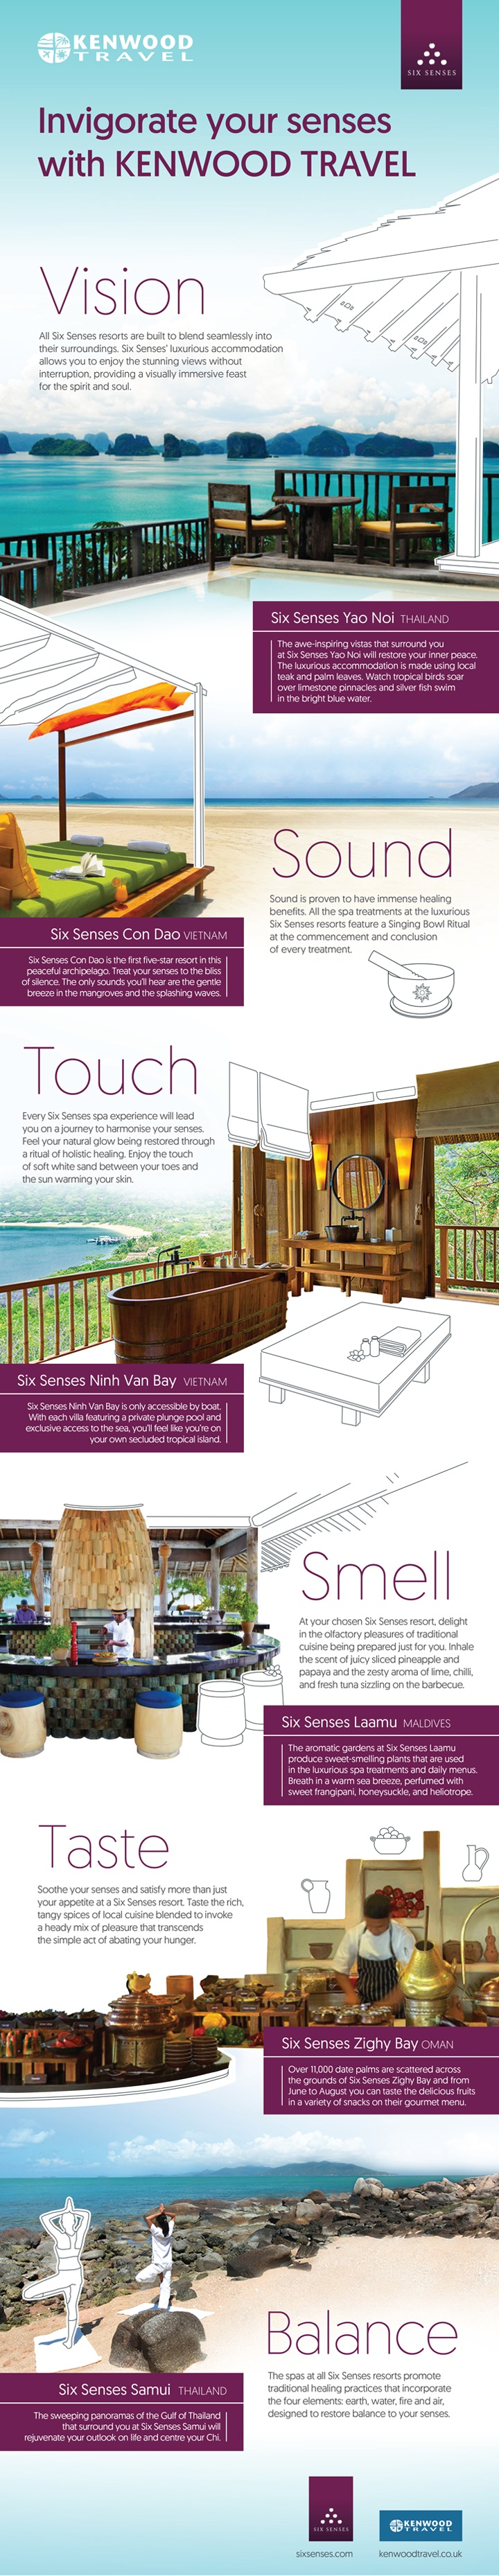 Kenwood Travel and Six Senses (infographic)